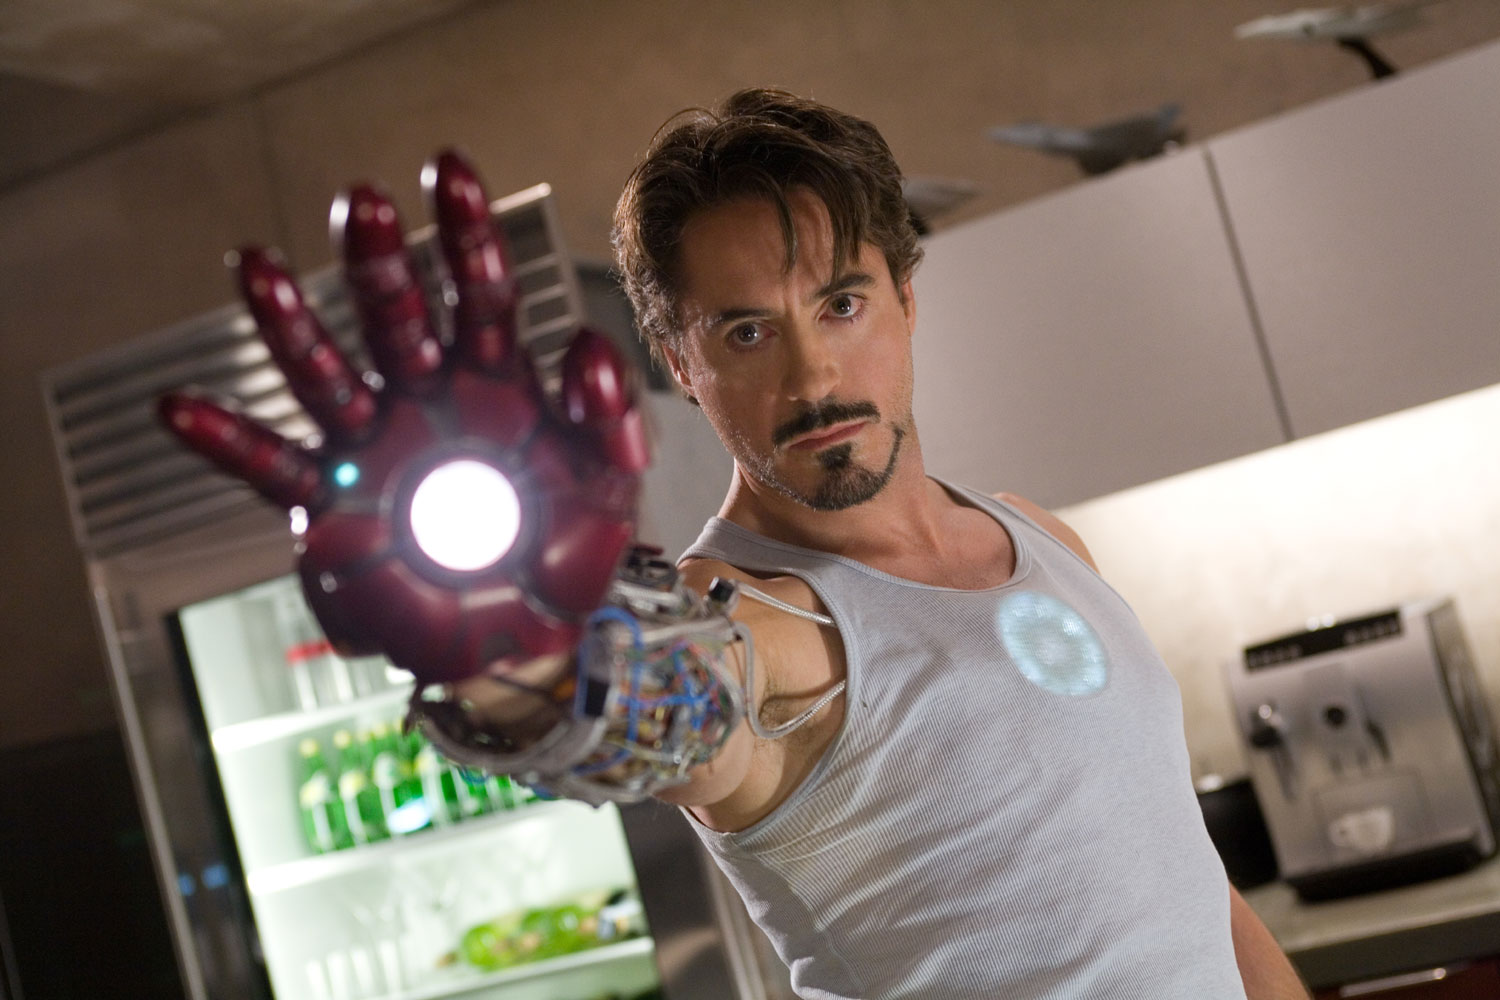 http://3.bp.blogspot.com/-fJYgHmURhX0/Tcrjedf3S3I/AAAAAAAAAMo/PoKwoGy3rnM/s1600/iron_man_movie_image_robert_downey_jr_as_tony_stark.jpg